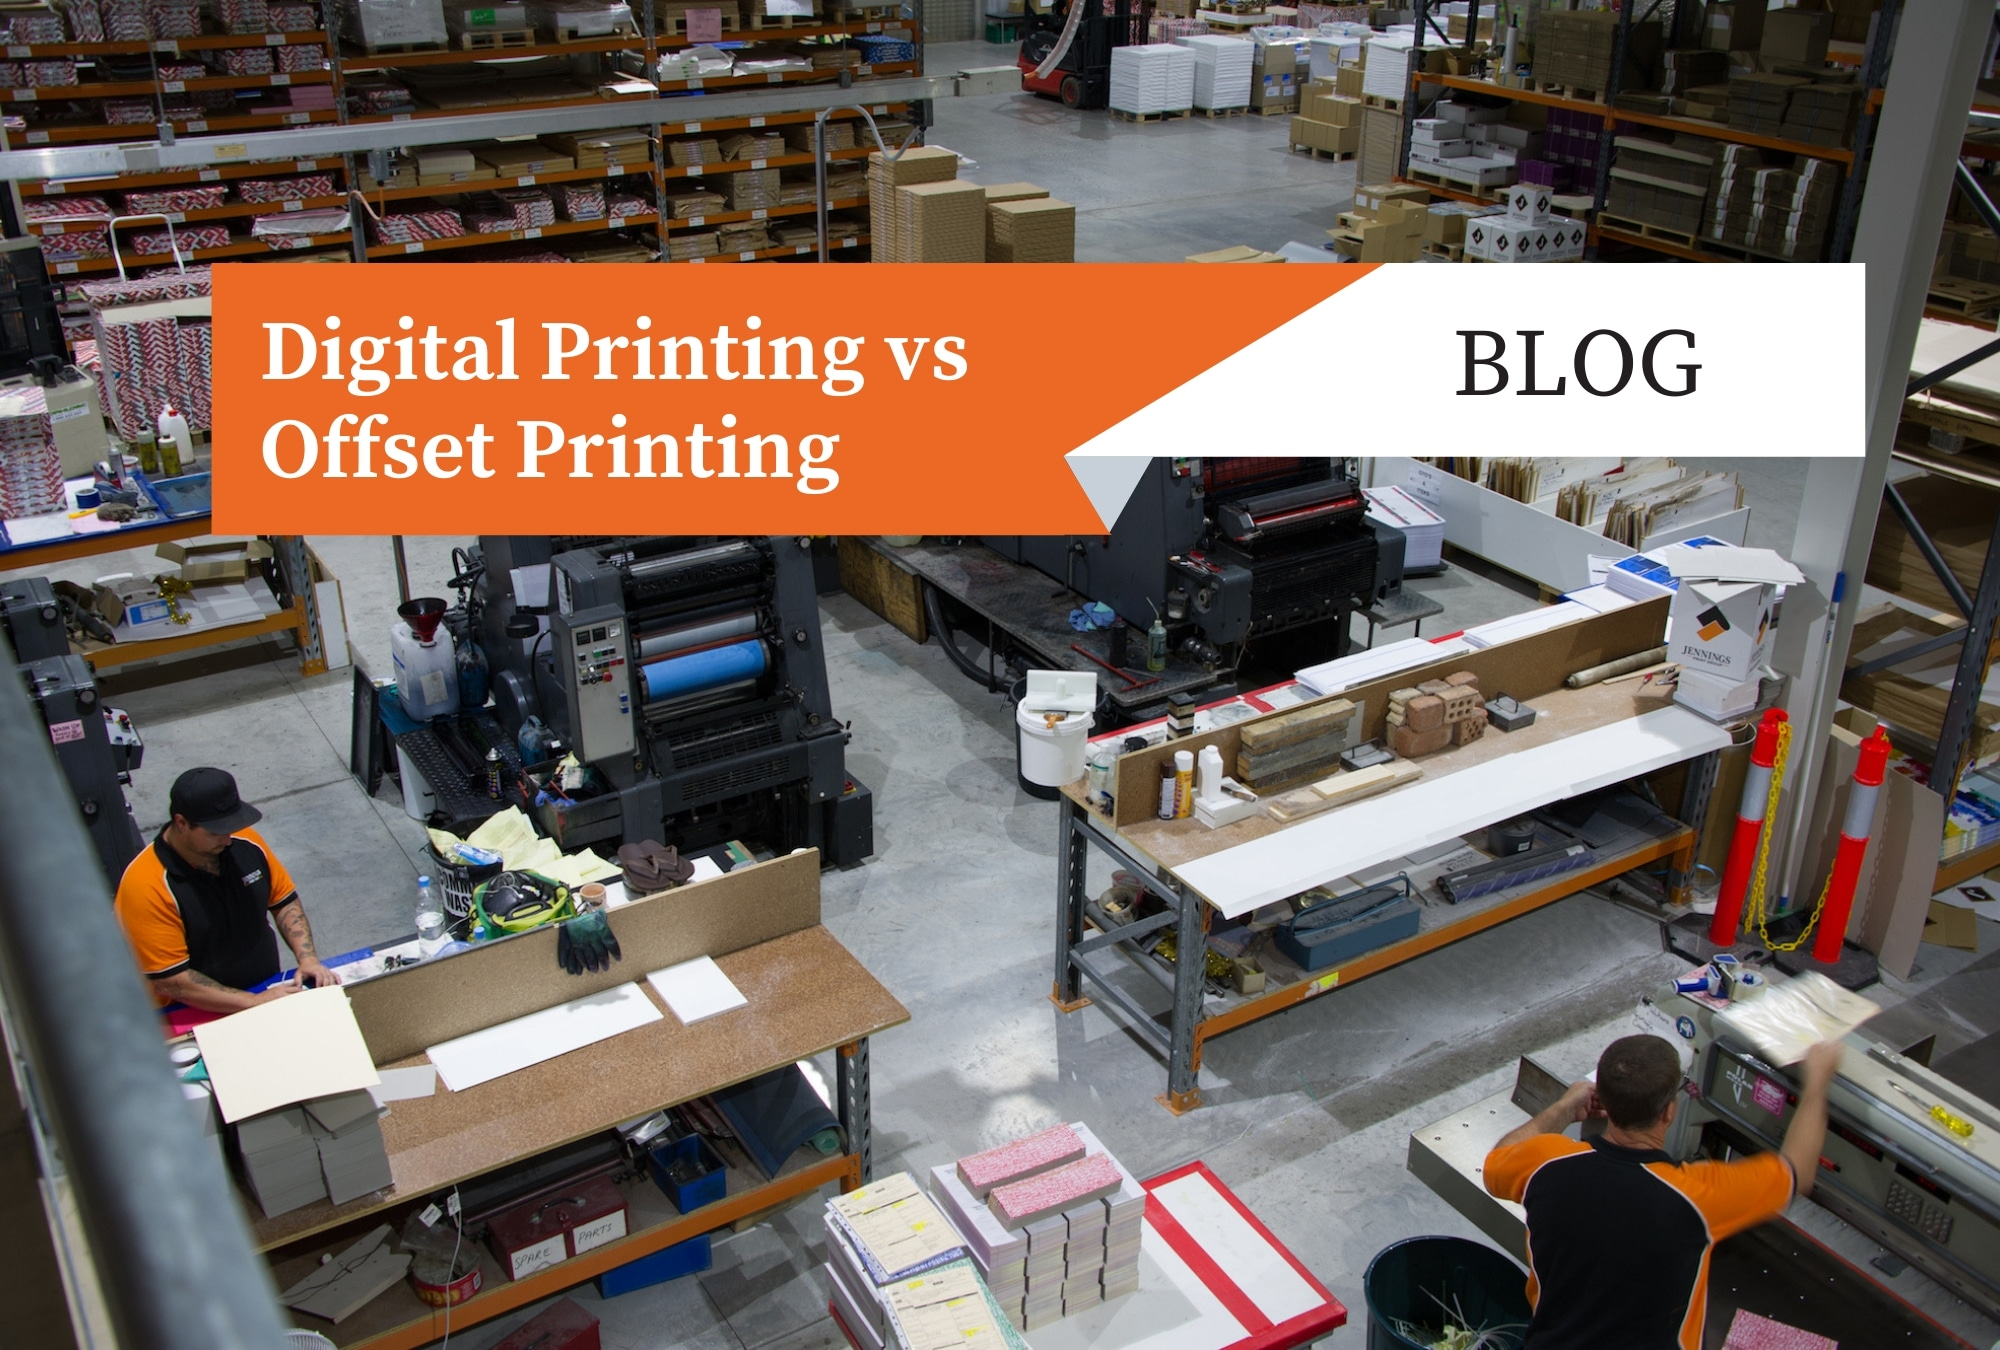 Digital Printing vs Offset Printing